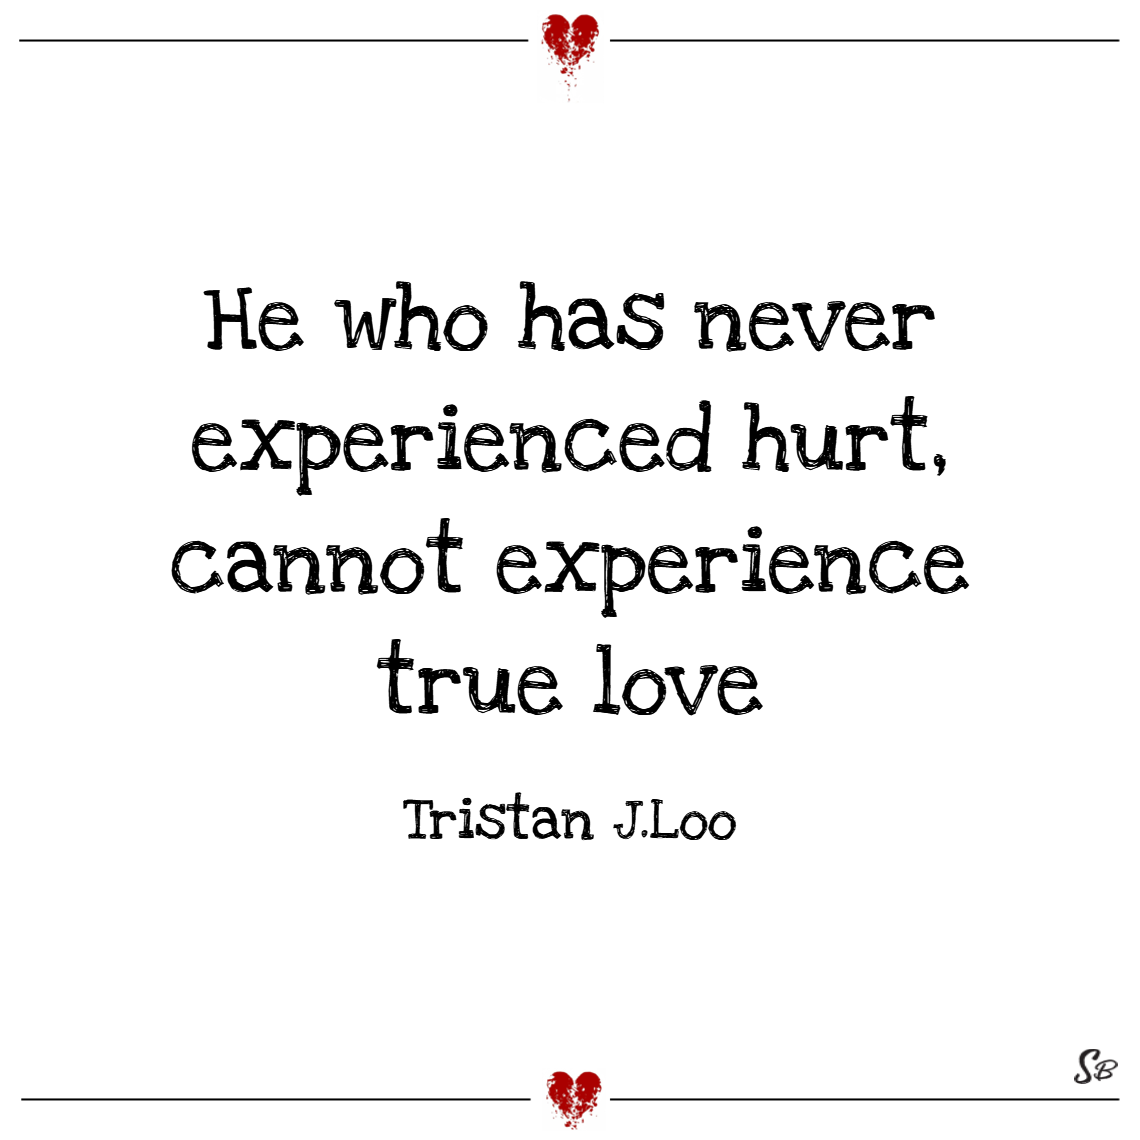 He who has never experienced hurt, cannot experience true love. – tristan j. loo